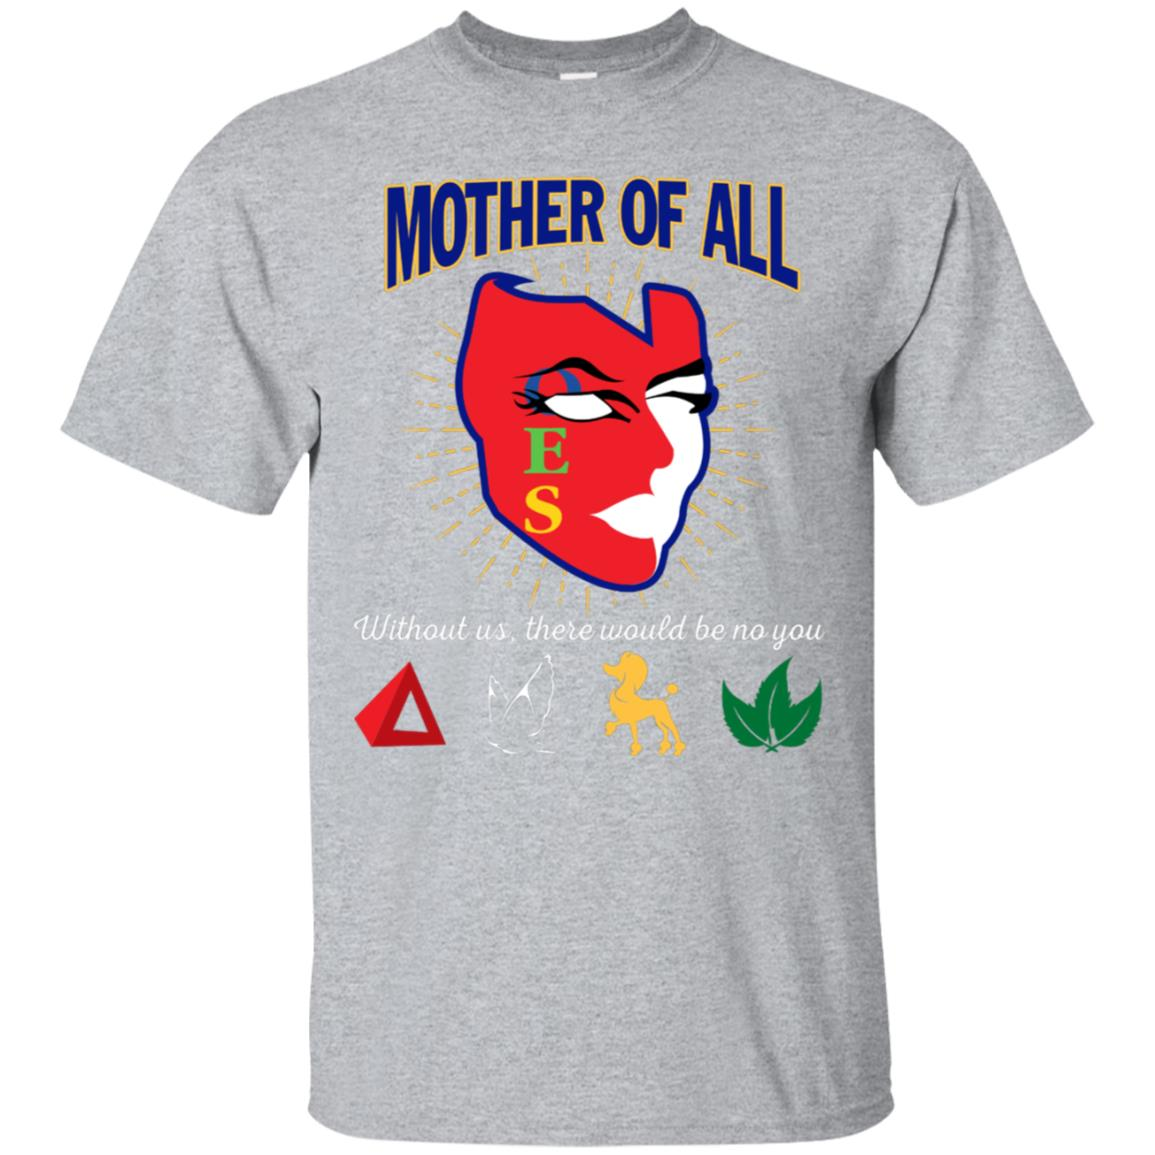 The Masonic Freemason - Mother Of All OES T-Shirt Gift 99promocode